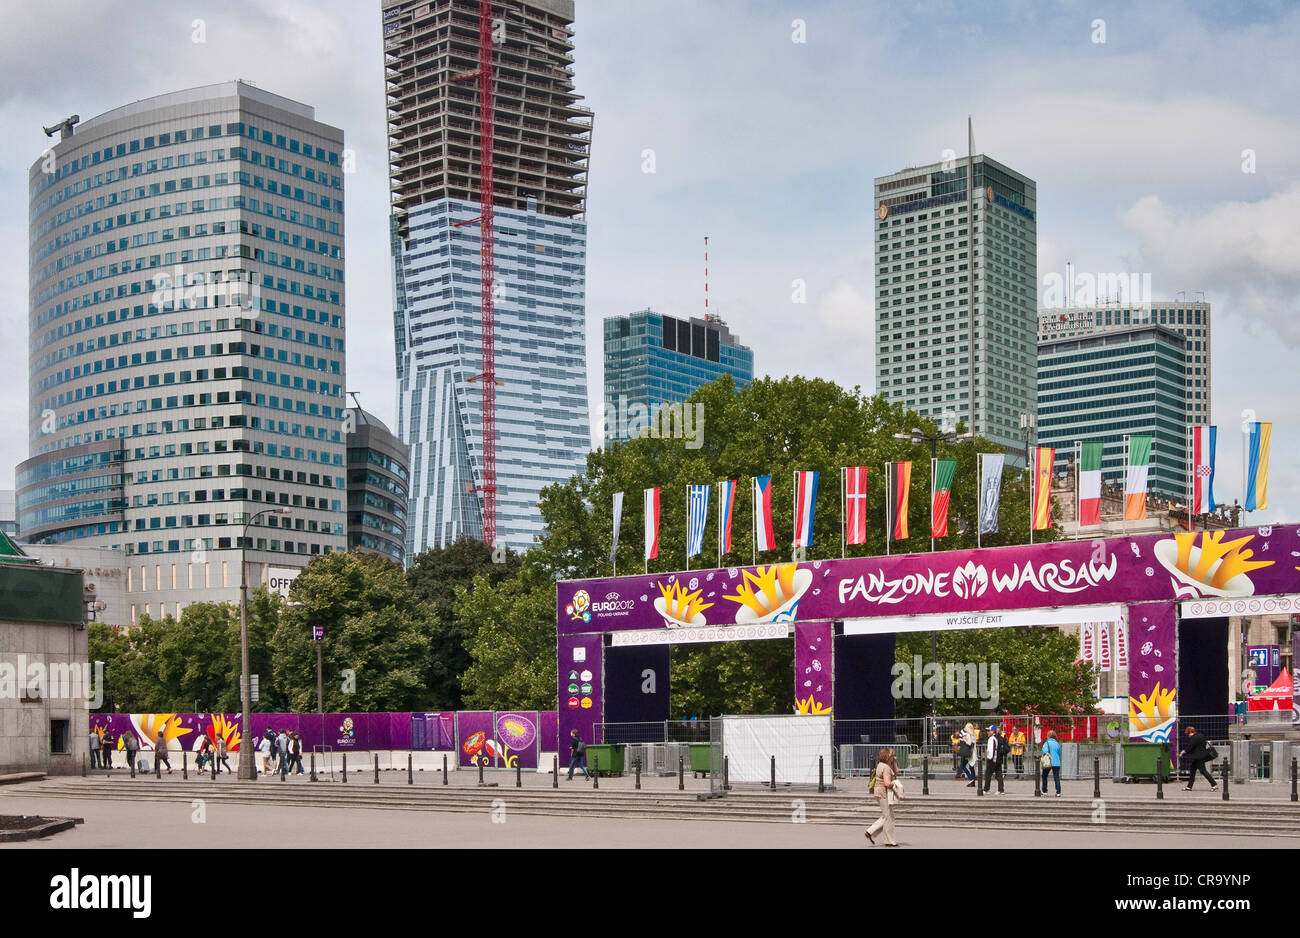 EURO 2012 Fan Zone entrance in center of Warsaw, Poland - Stock Image